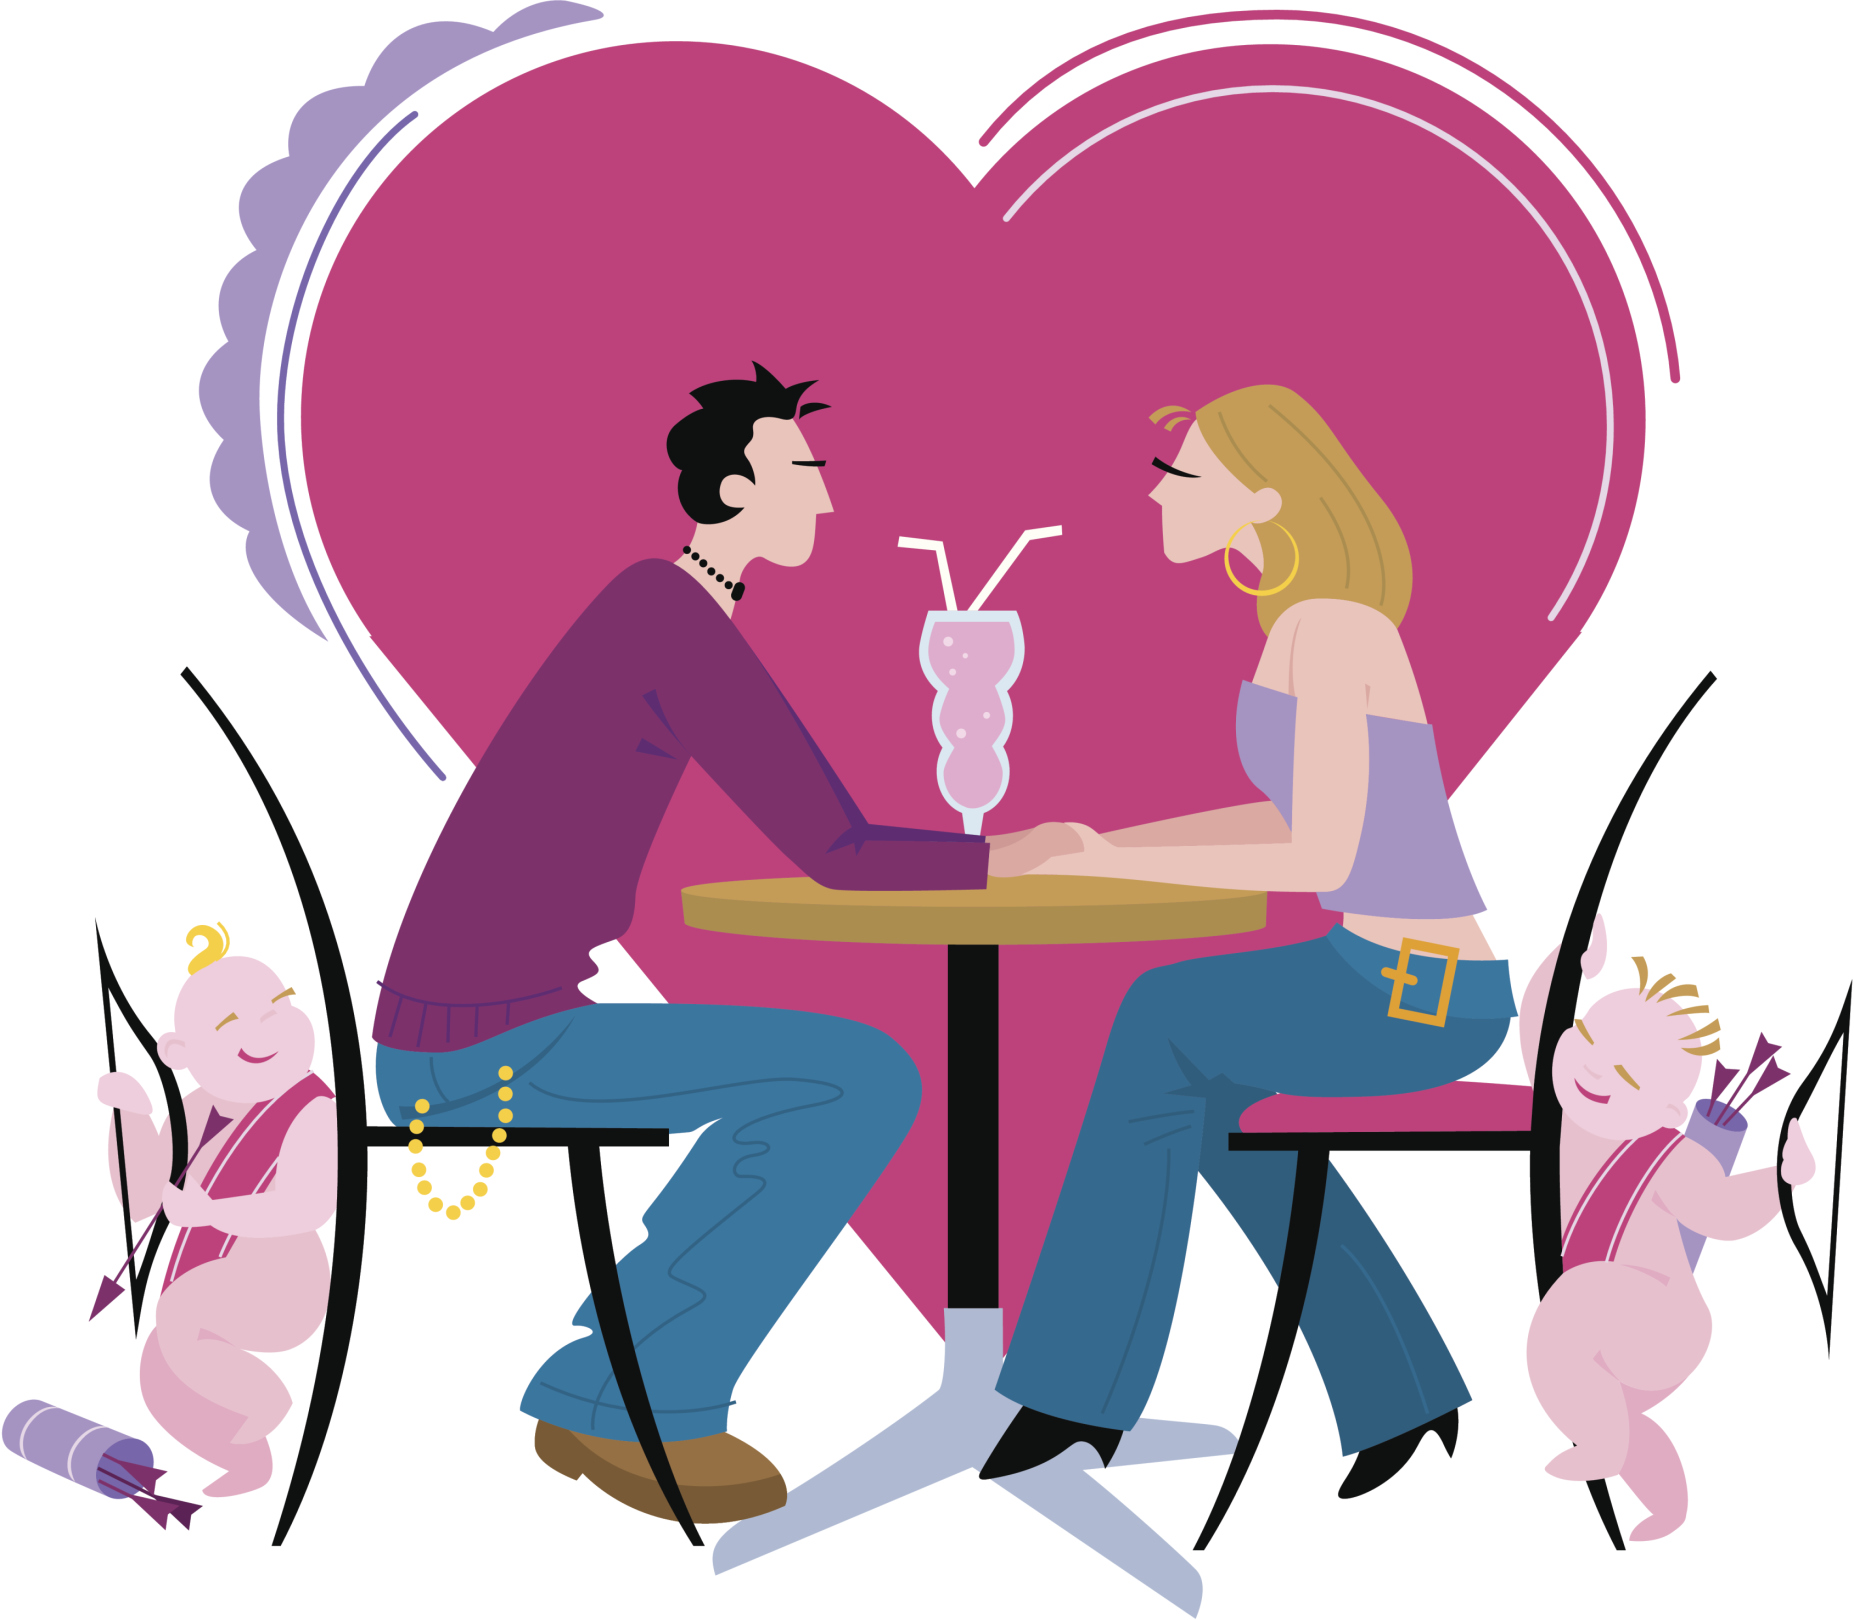 dating advice,psychic dating advice,dating tips,relationship advice